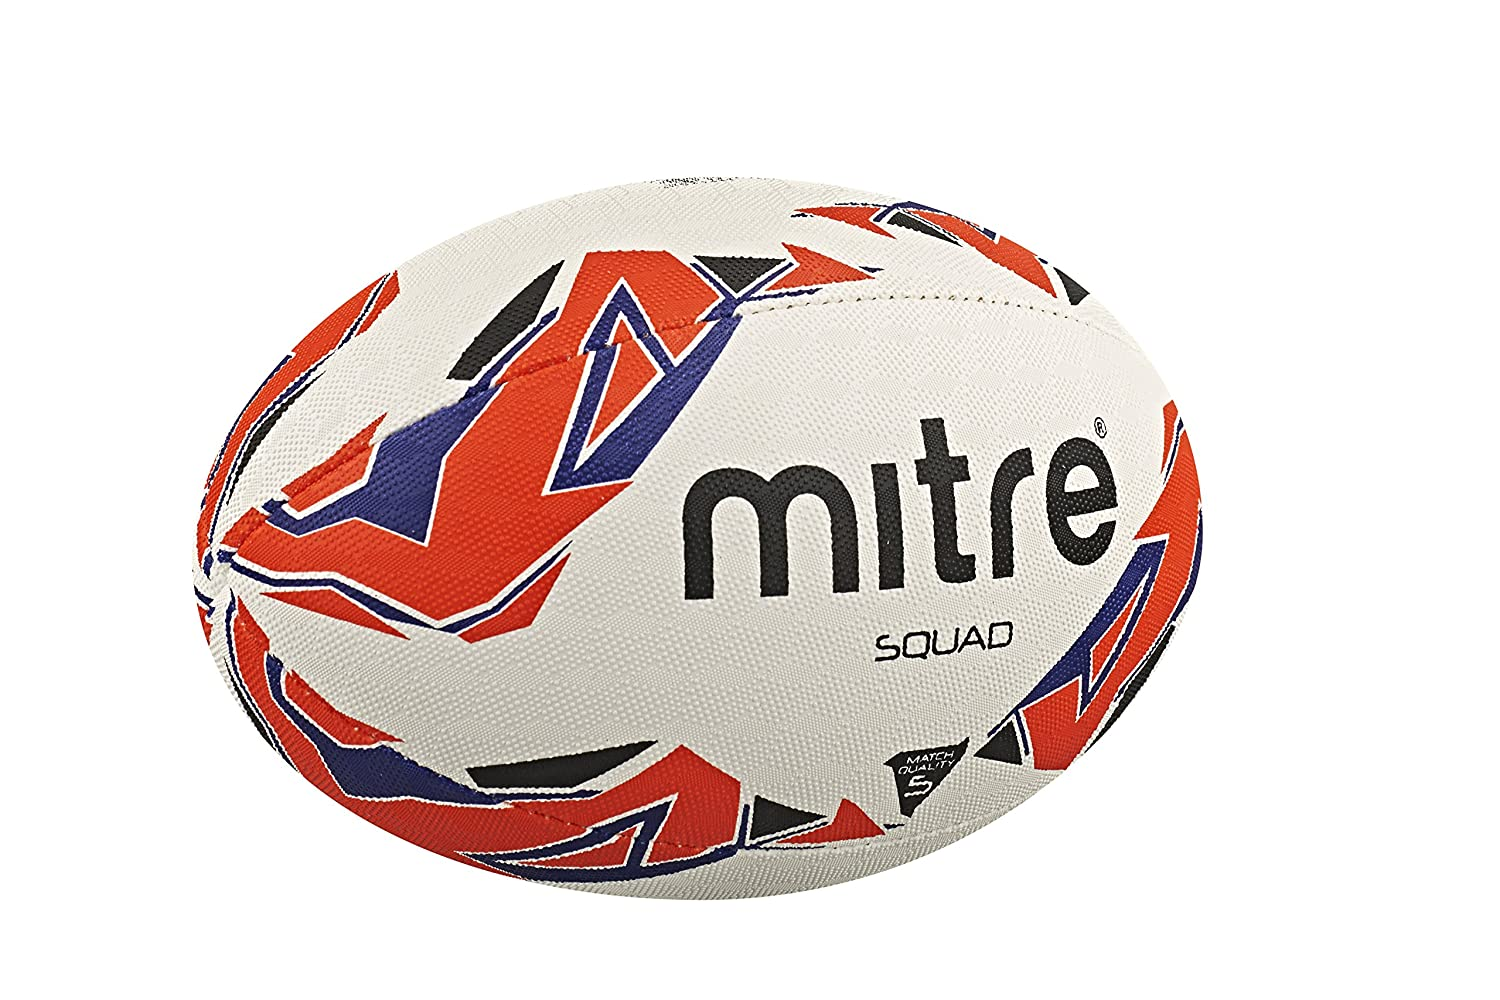 Mitre Mens Squad Match Rugby Ball - White/Red/Blue, Size 4 ...